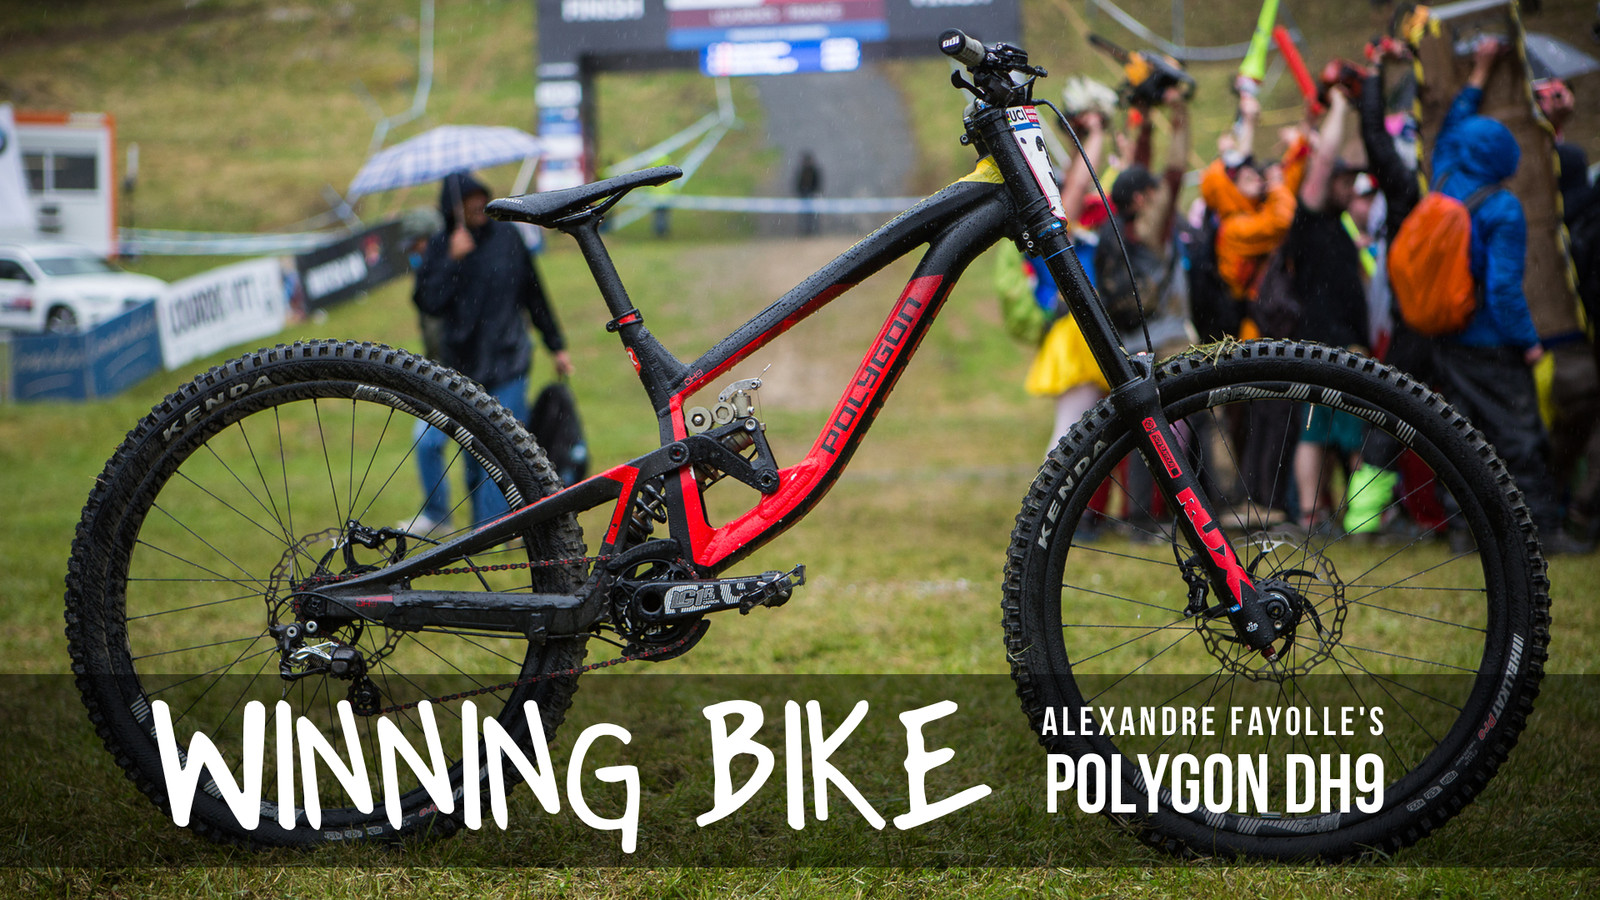 WINNING BIKE: Alexandre Fayolle's Polygon DH9